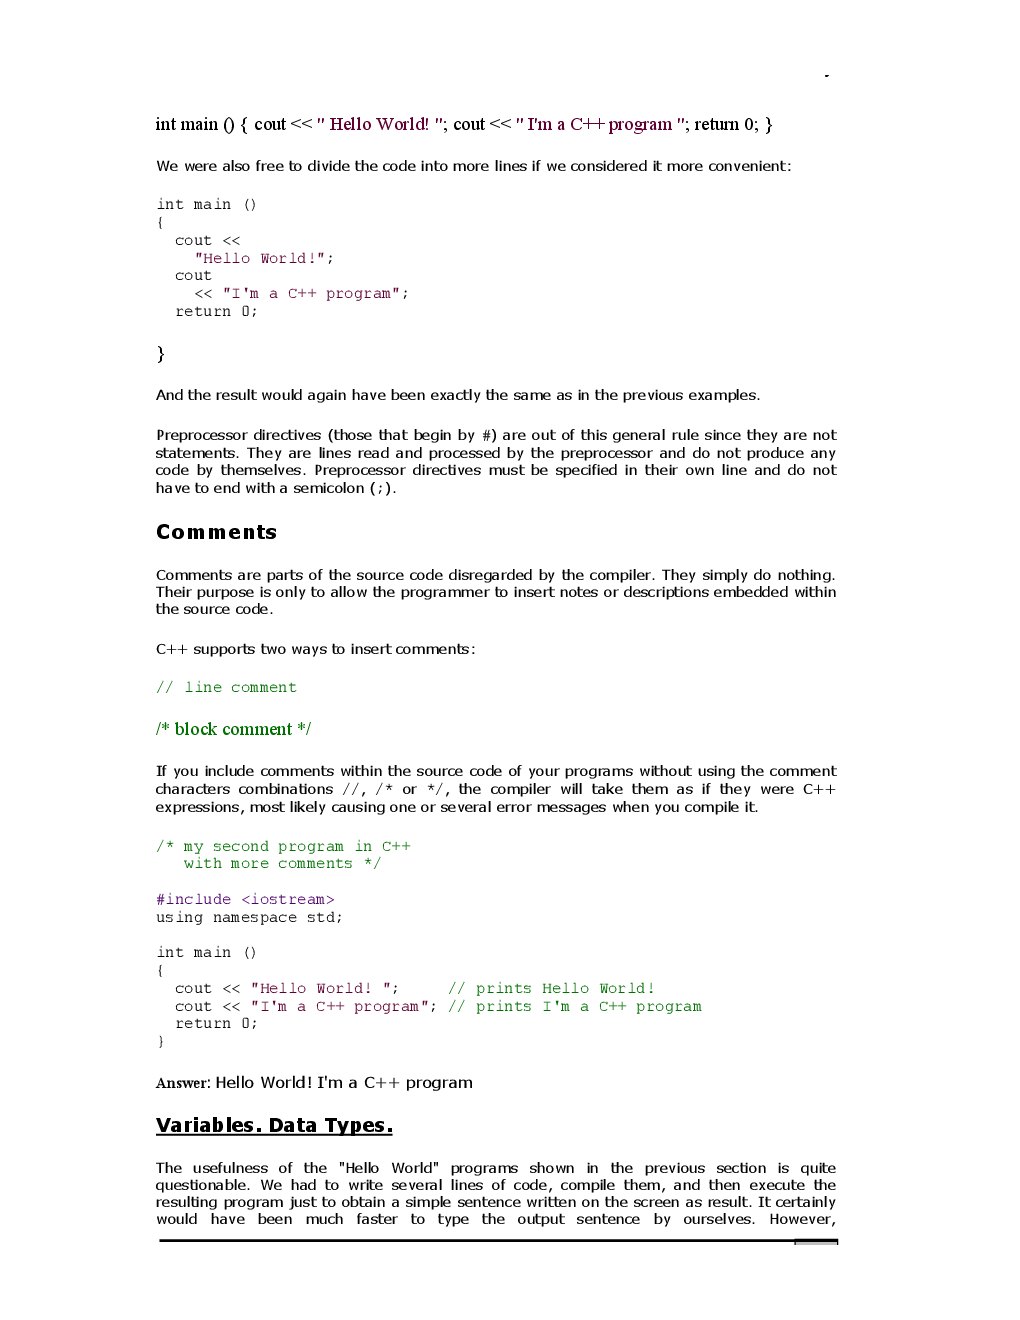 VTU eNotes On History Of C++ For Computer Science Engineering - Page 5